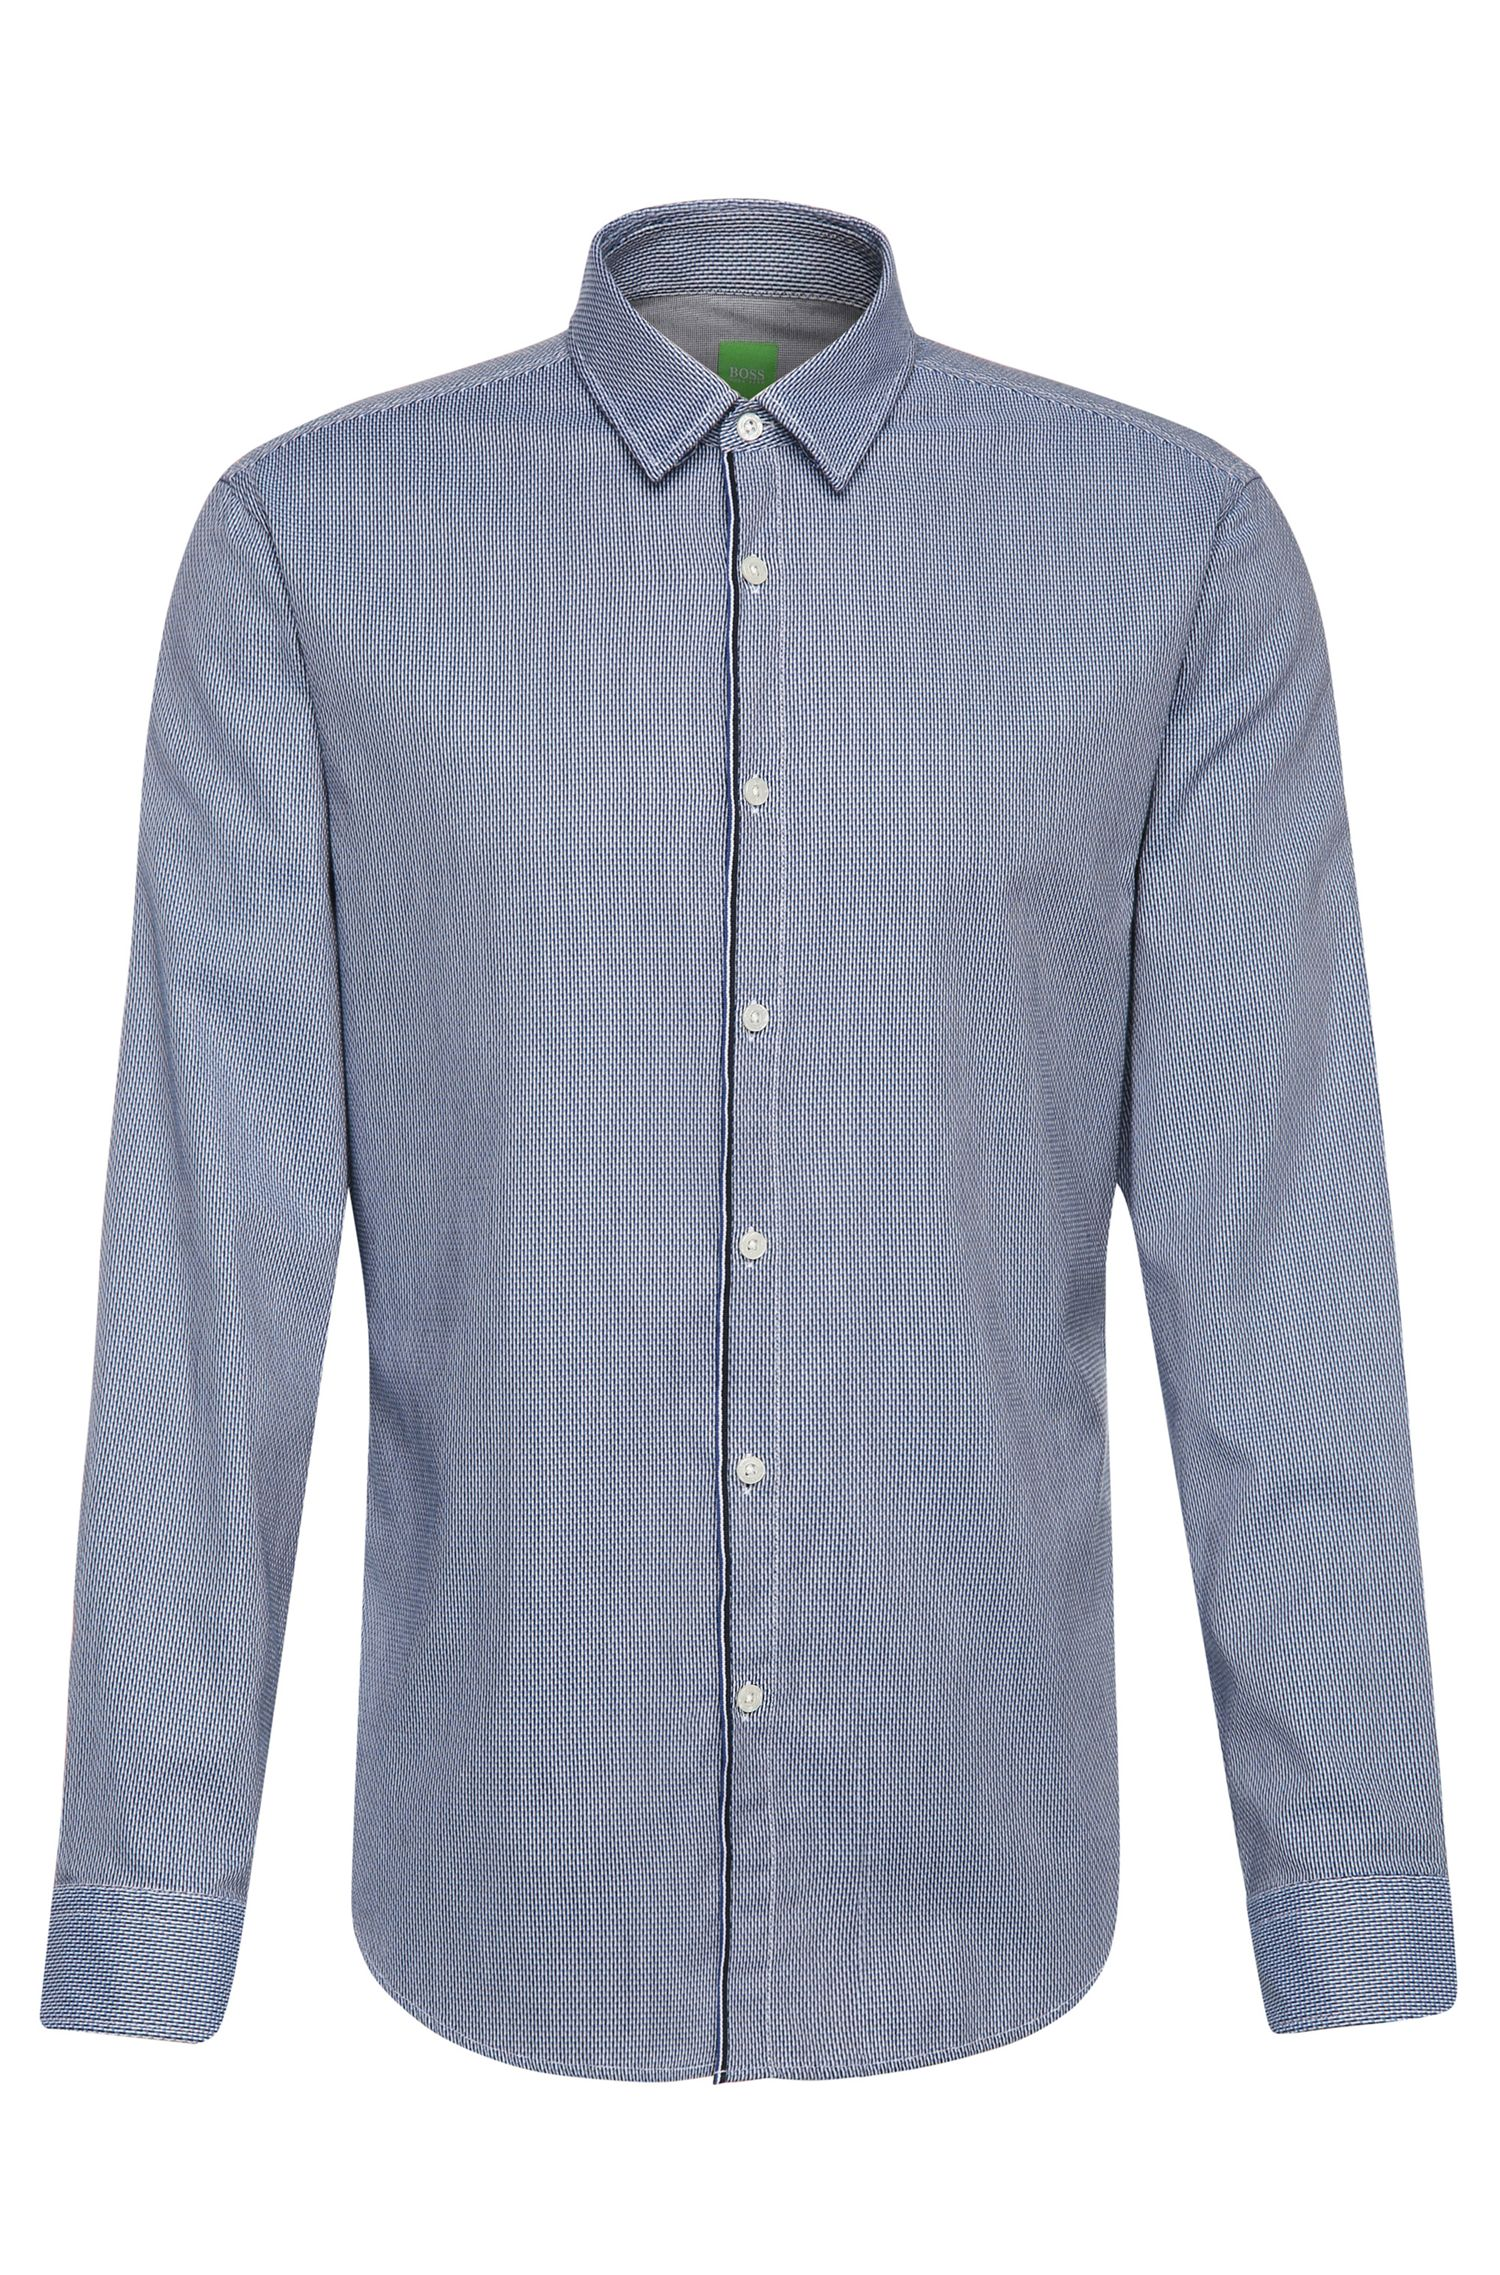 'Brizzi' | Slim Fit, Patterned Cotton Button Down Shirt